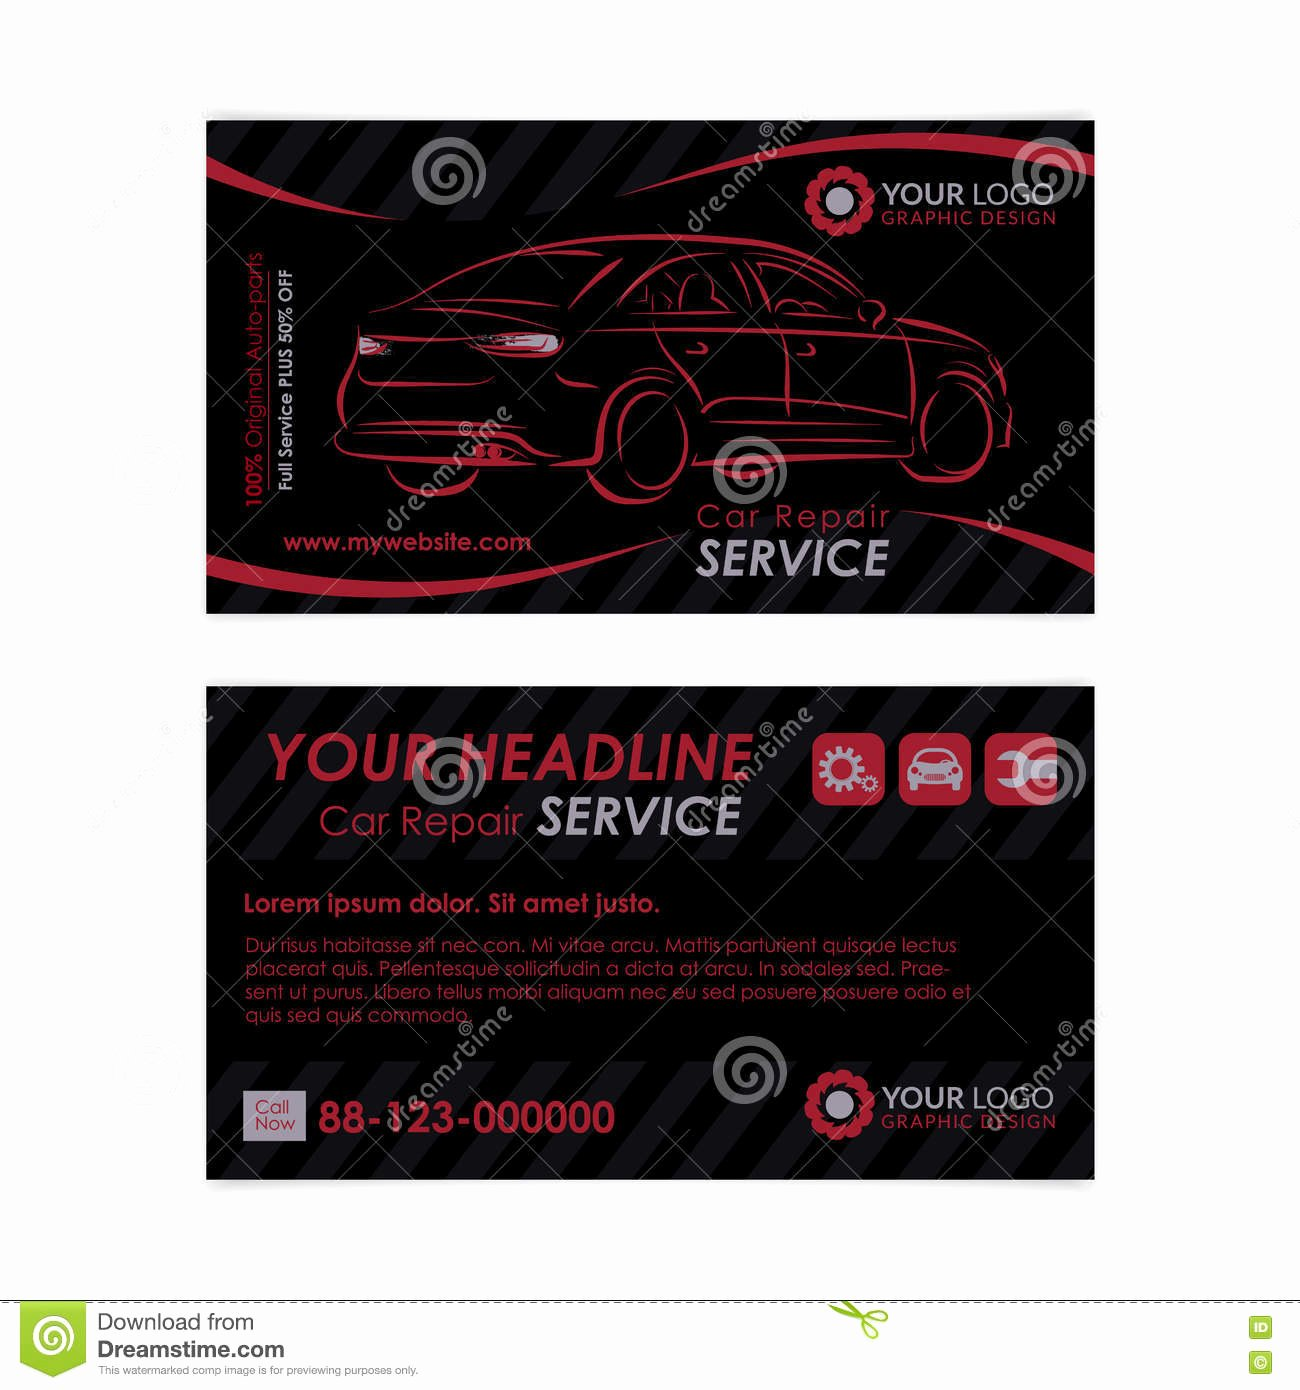 Automotive Repair Business Cards Inspirational Auto Repair Business Card Template Create Your Own